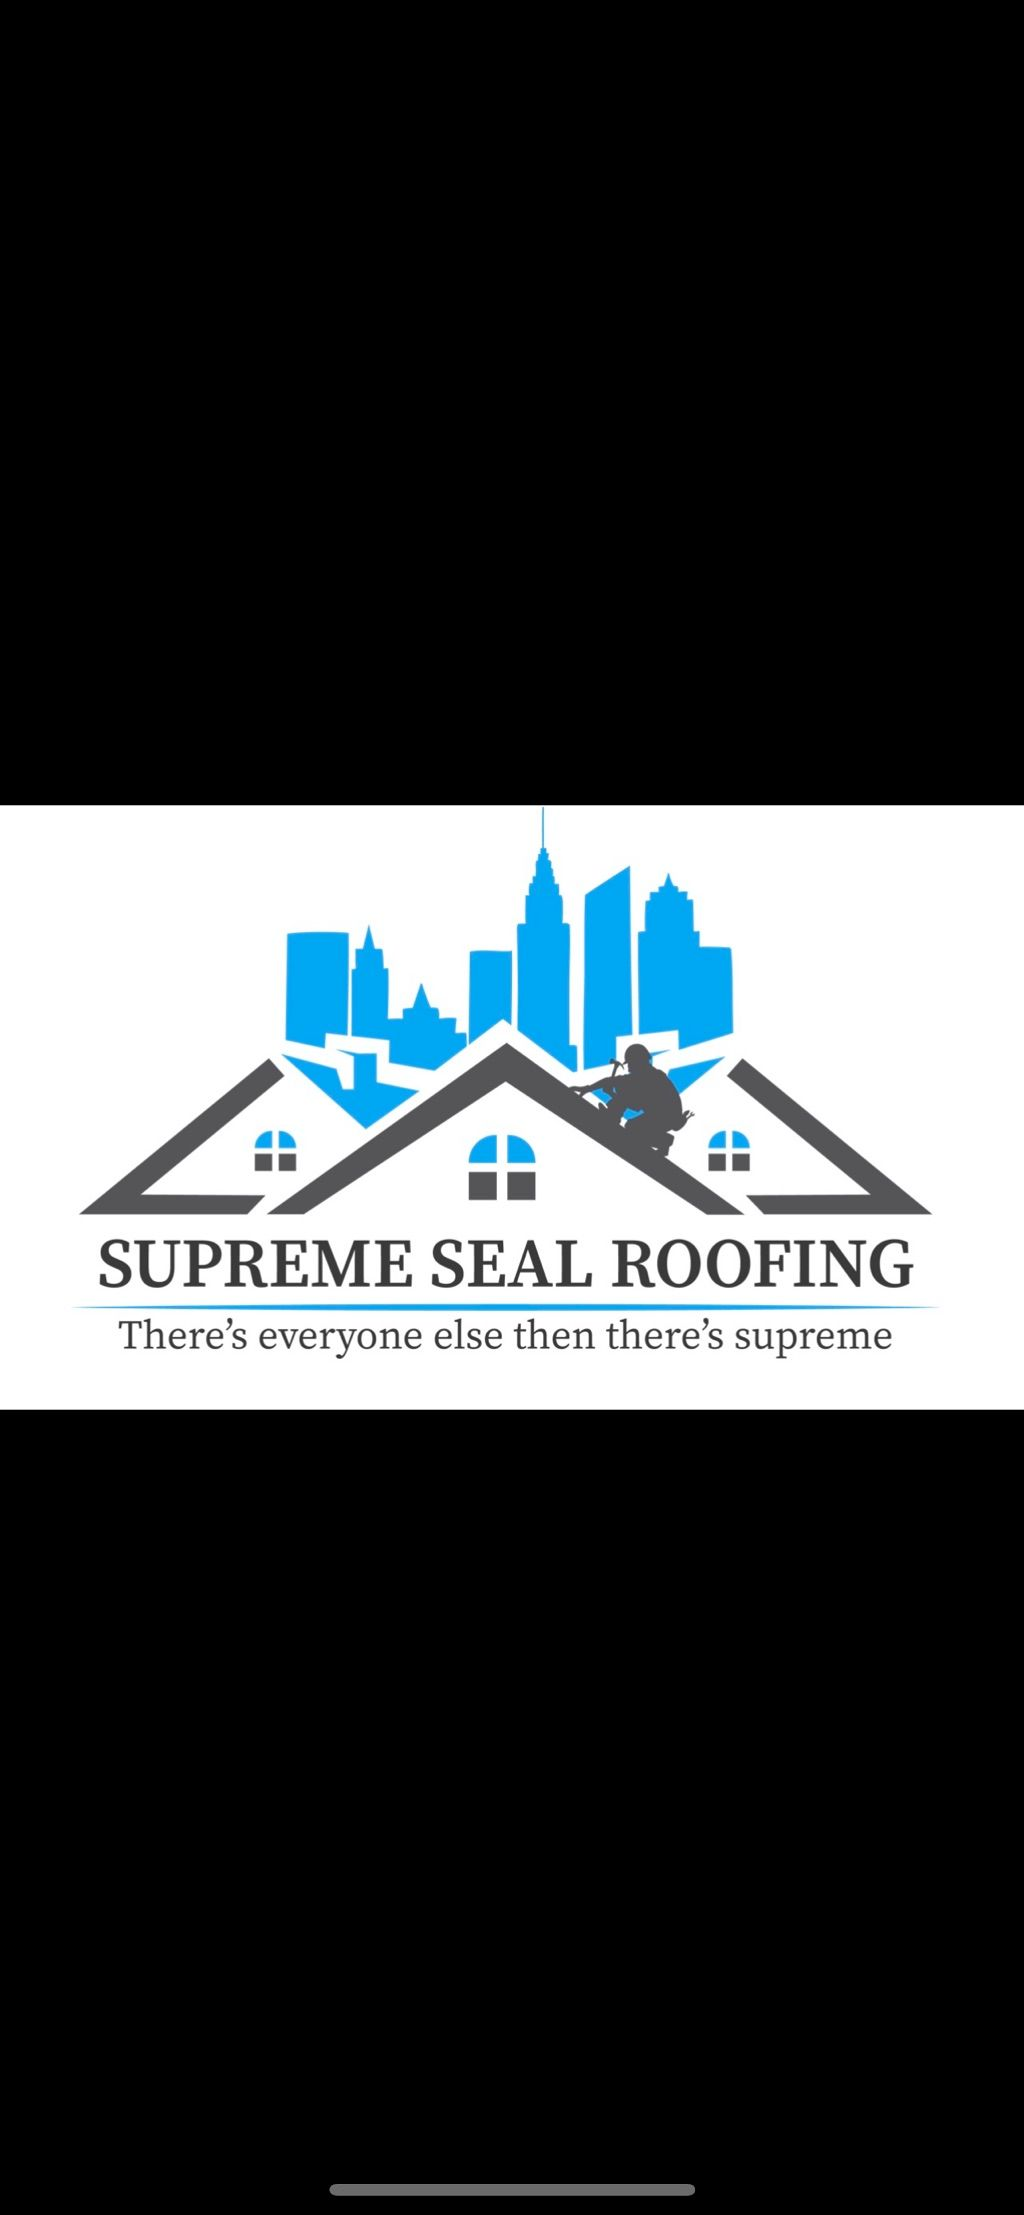 SUPREME SEAL ROOFING